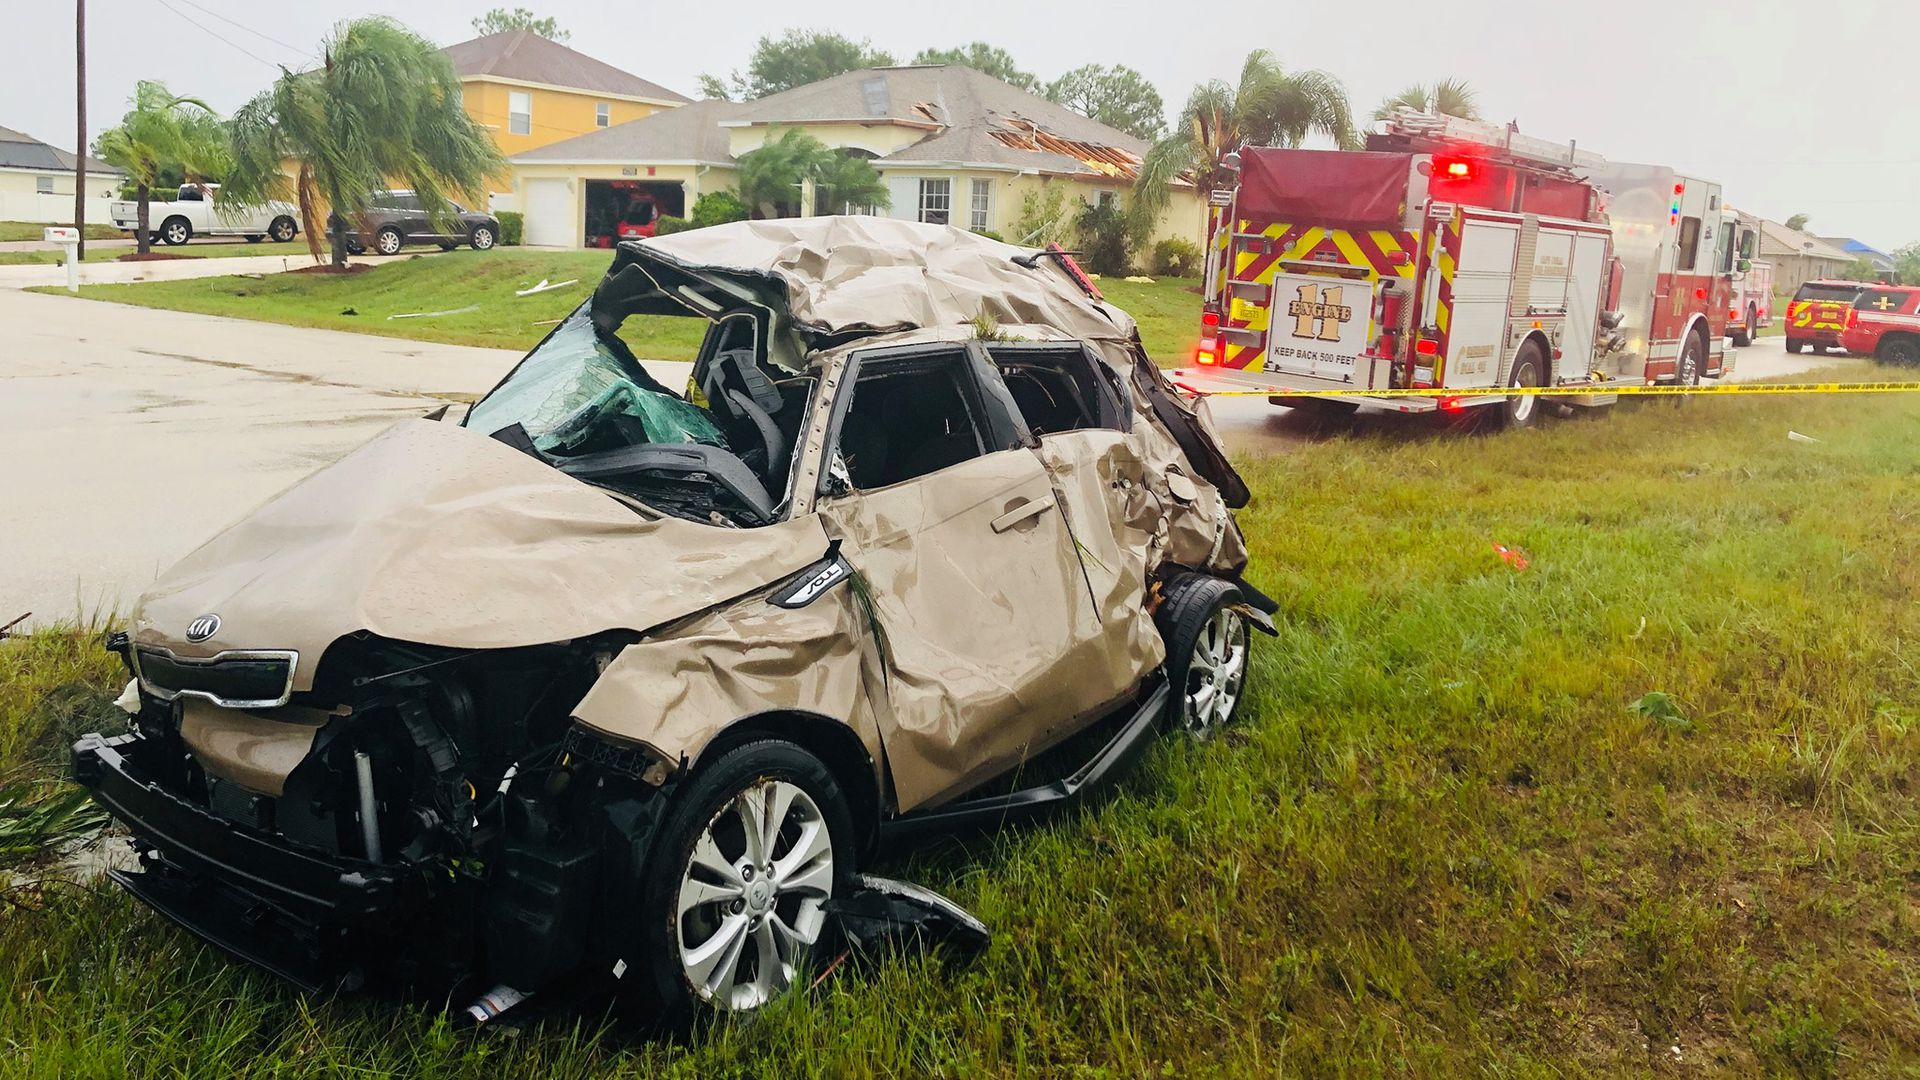 A tornado spawned by Tropical Storm Nestor damaged this car in Cape Coral, Florida, on Saturday, Oct. 19, 2019.